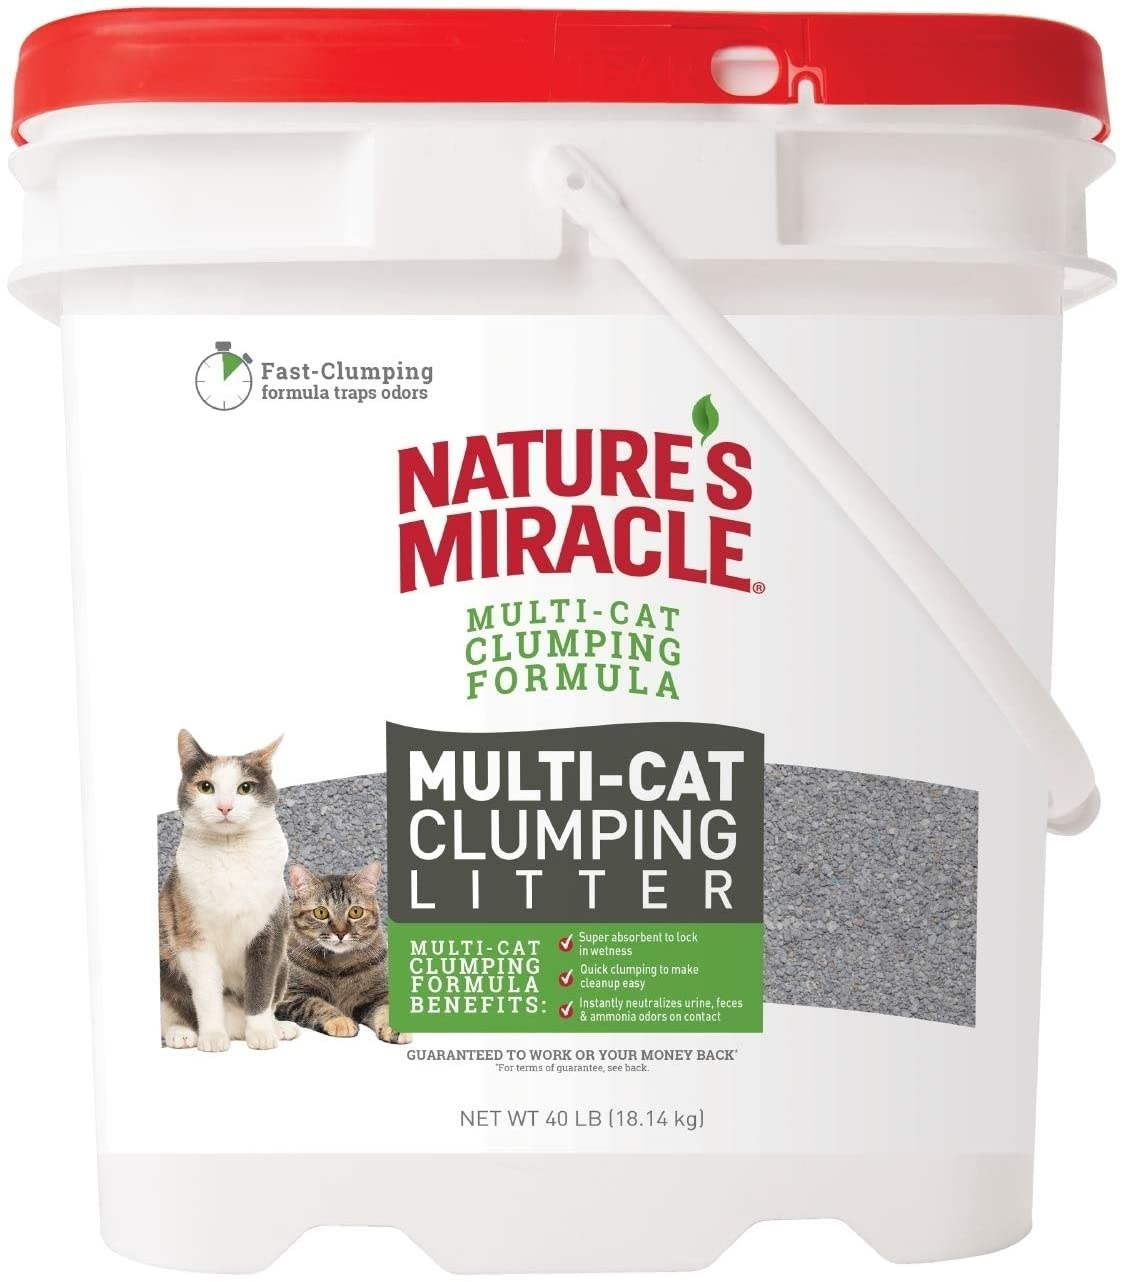 Super absorbent product for homes with multiple cats